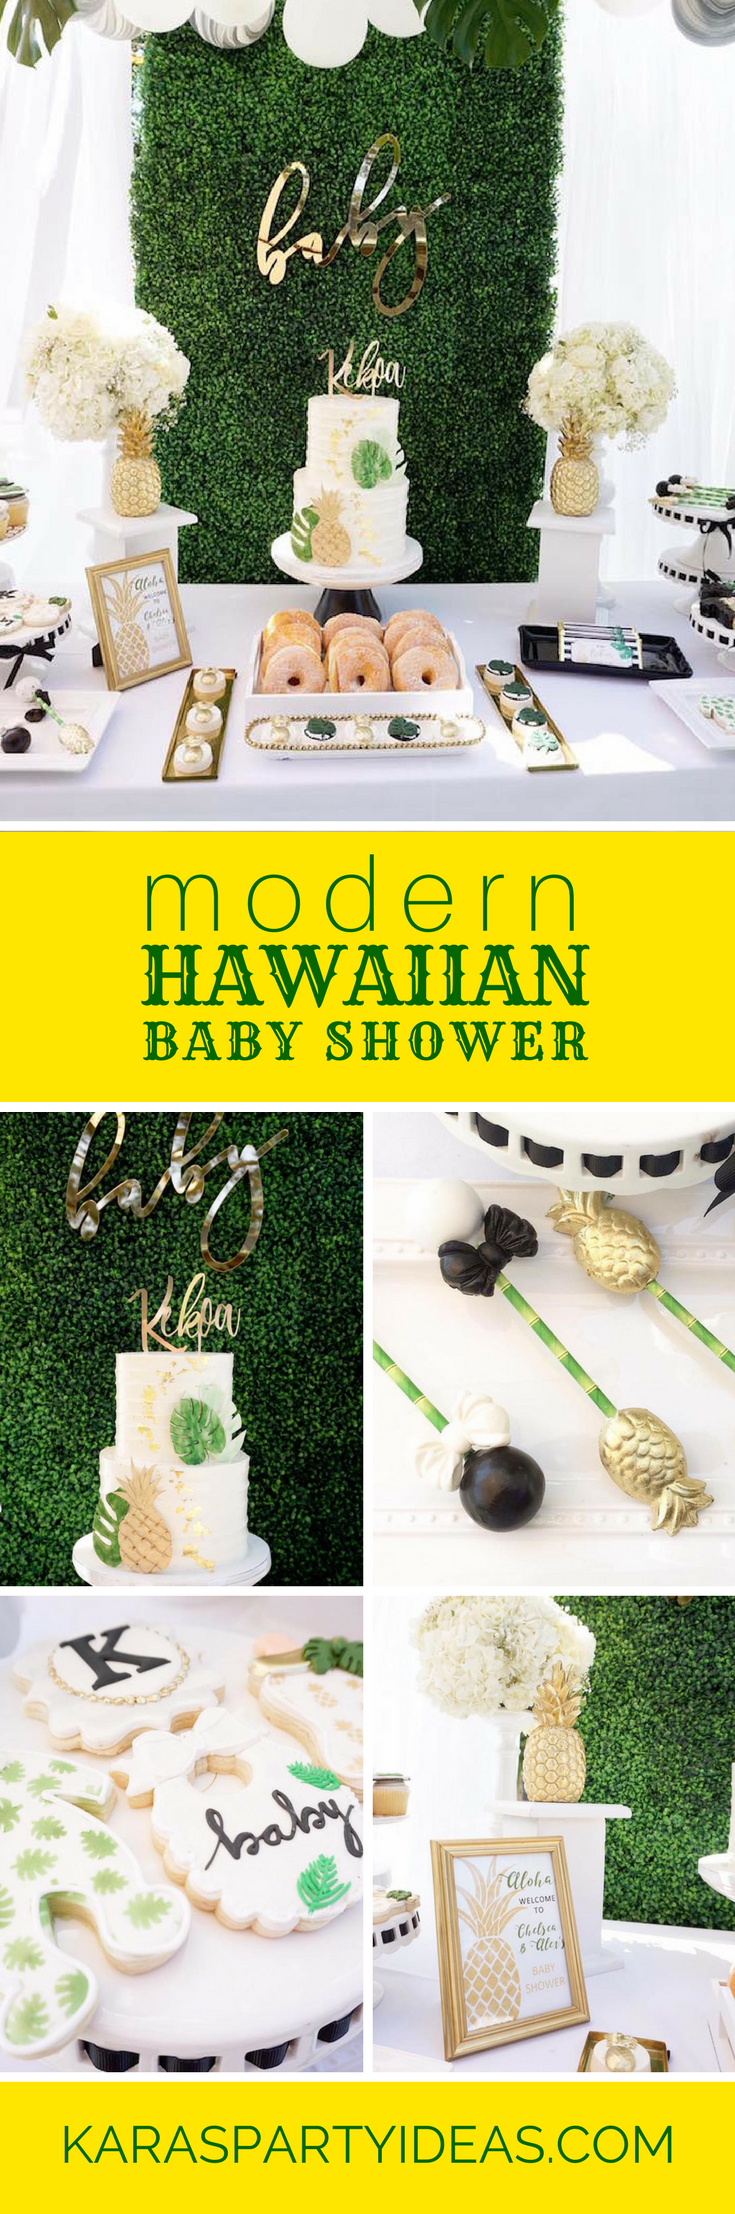 Baby Shower Favors Hawaii kara's party ideas modern hawaiian baby shower | kara's party ideas